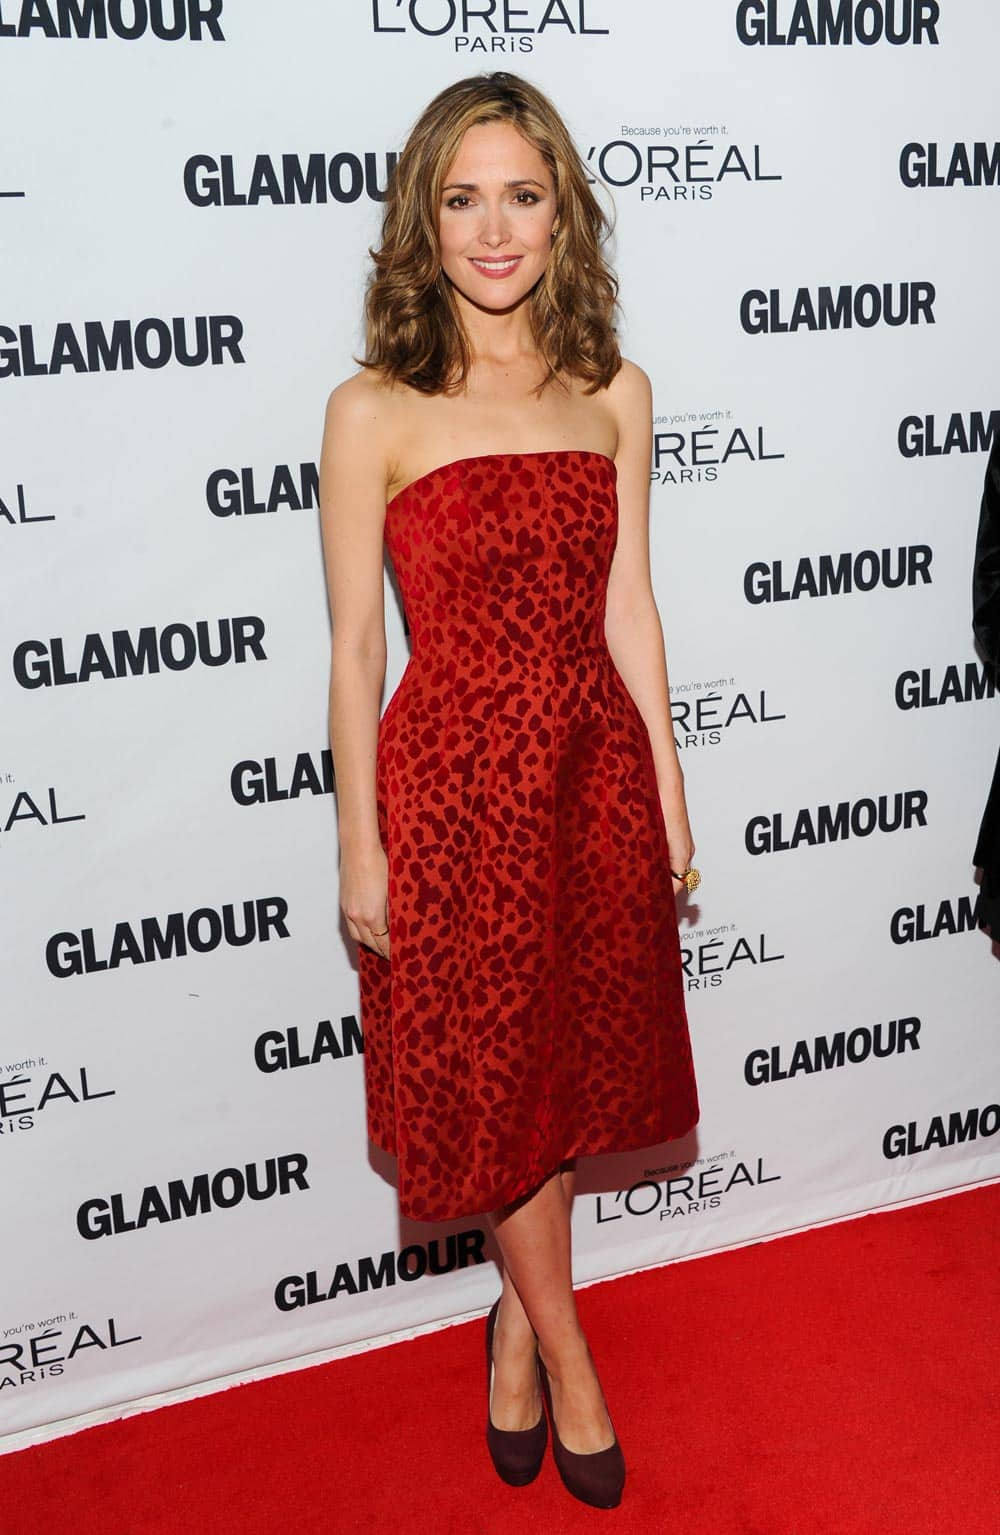 Actress Rose Byrne attends the 23rd Annual Glamour Women of the Year Awards hosted by Glamour Magazine at Carnegie Hall, in New York.